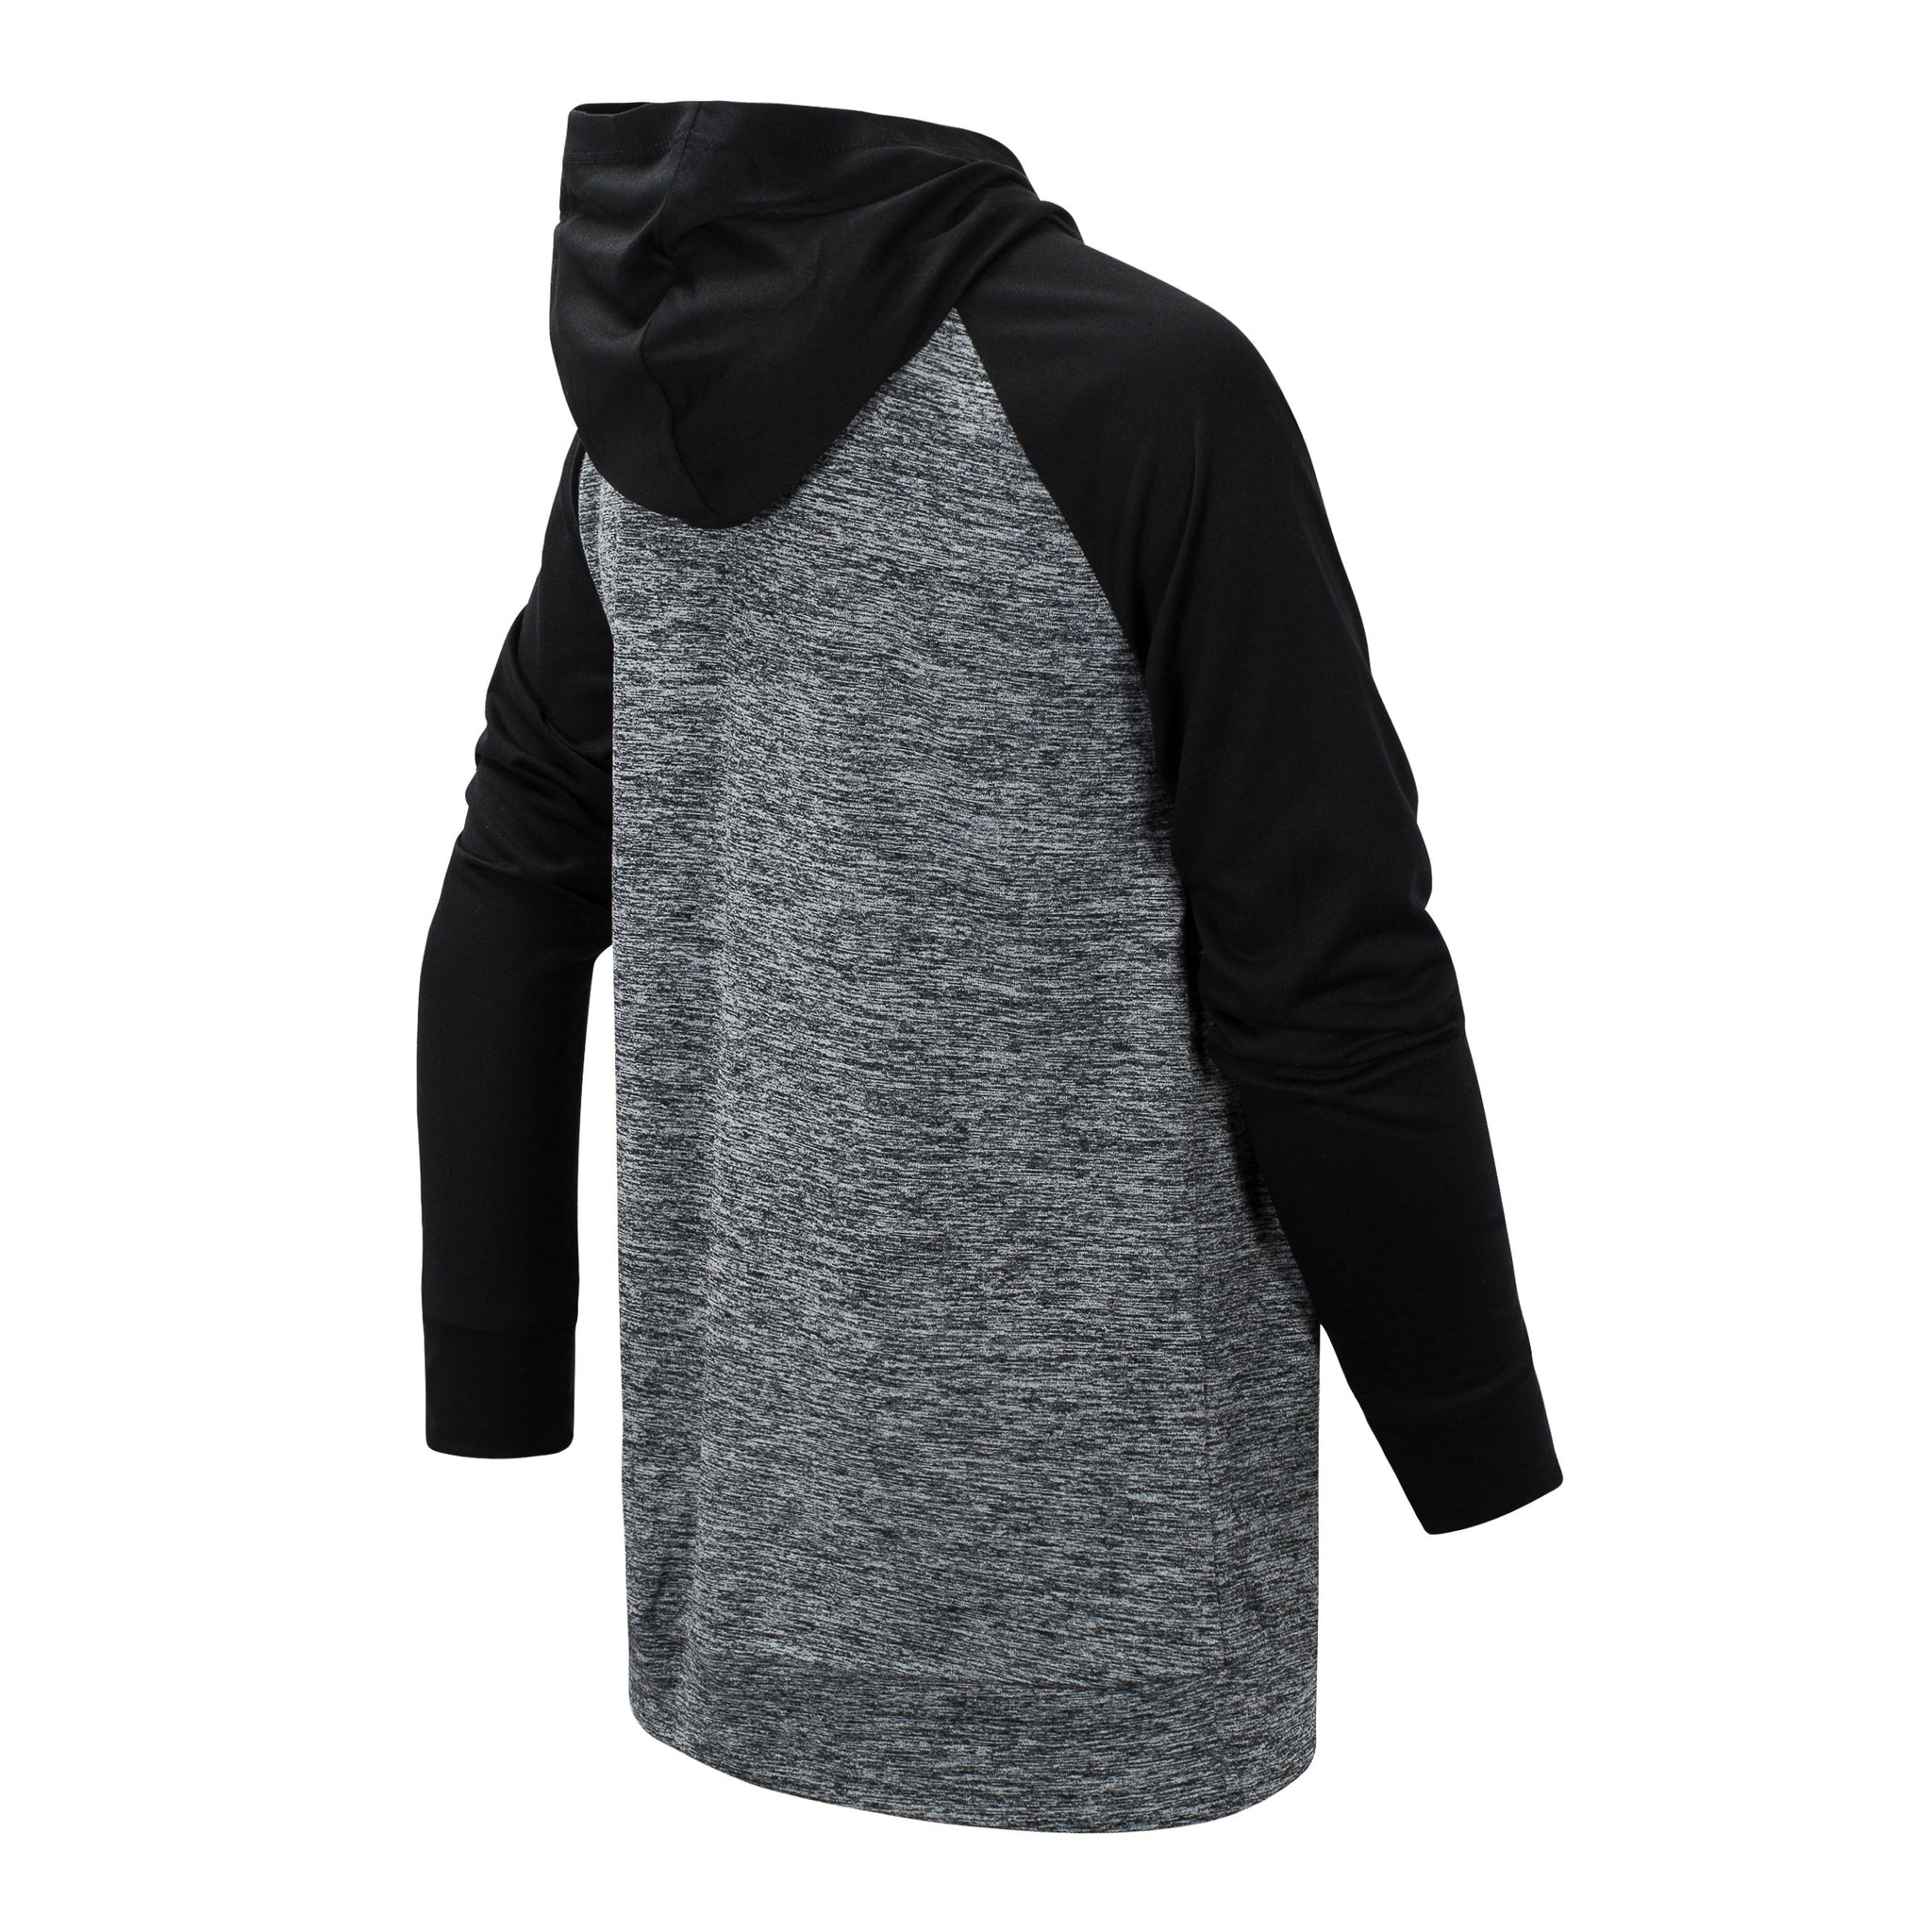 Boys' Black Long Sleeve Hooded Performance Top